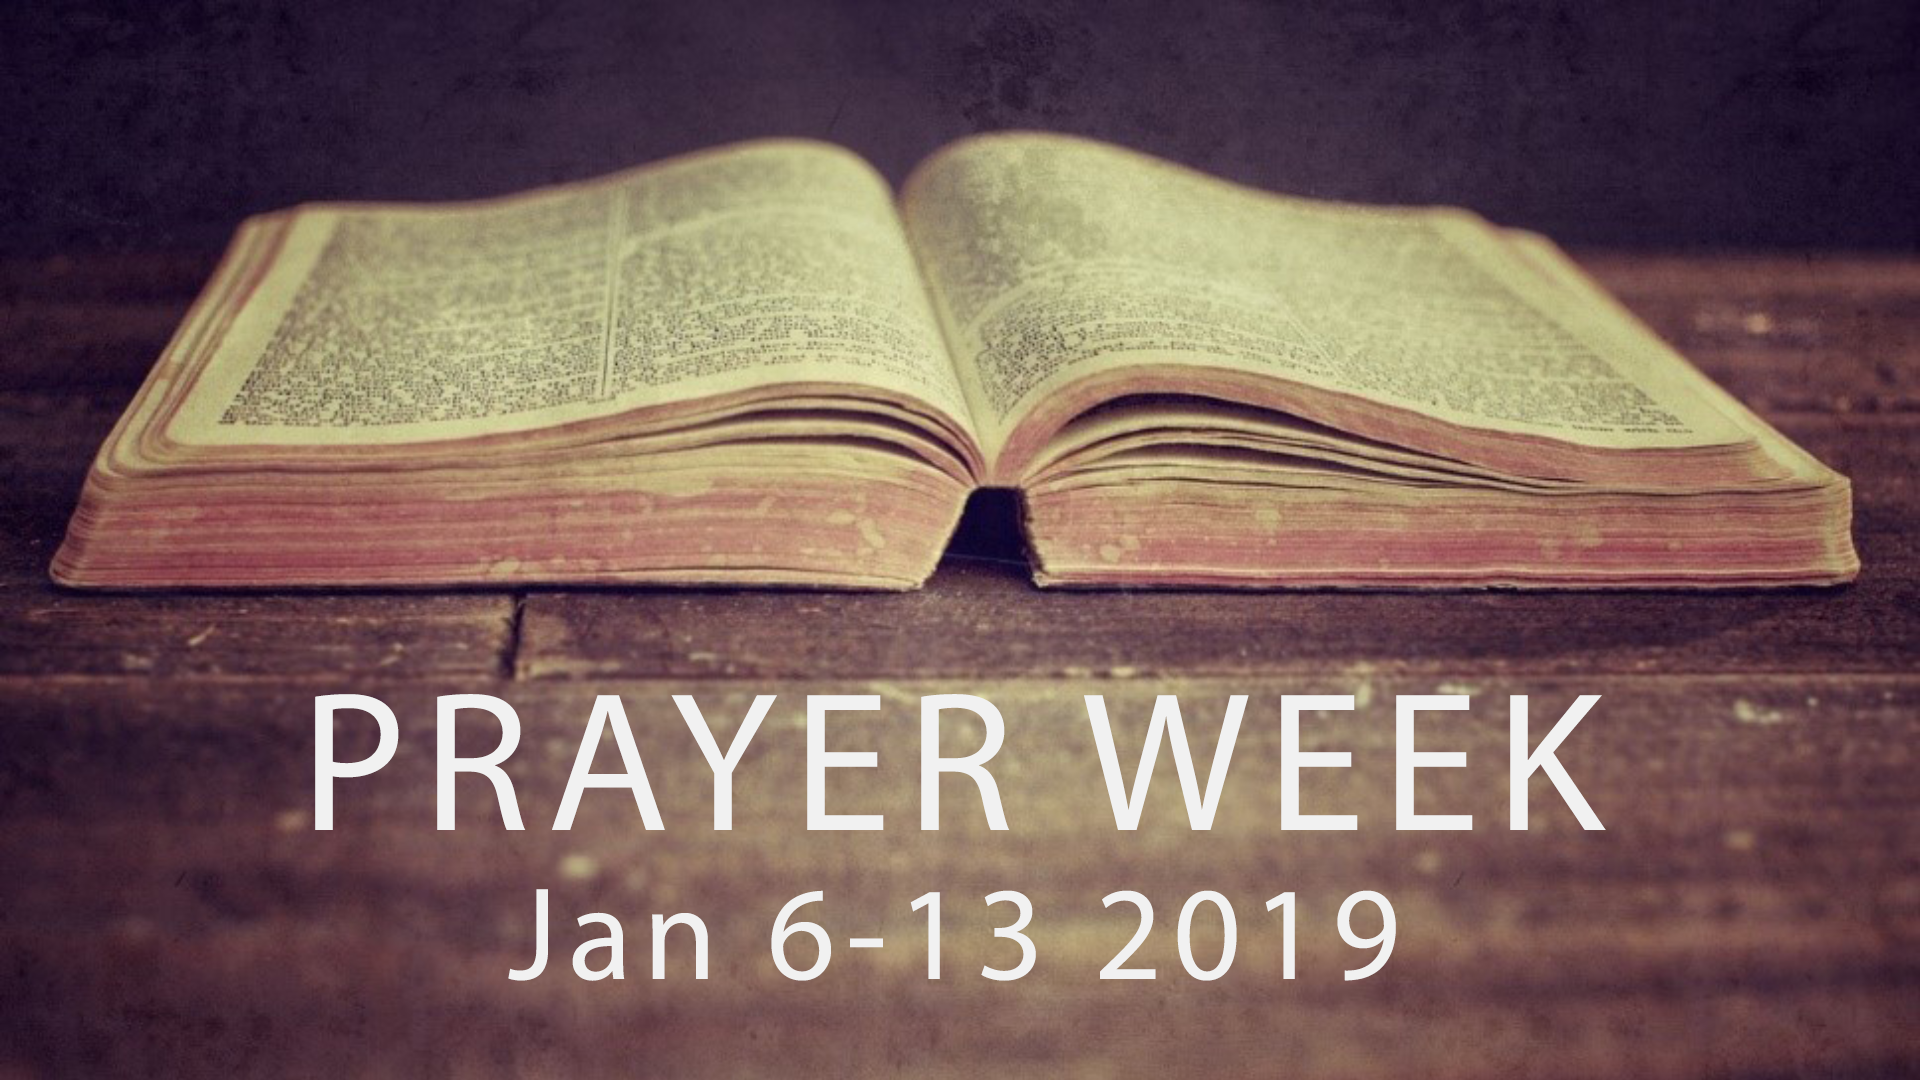 It's that time of year again! Every year we dedicate the first full week of the year to spending time in prayer. Follow our social media pages each day of prayer week for more information!